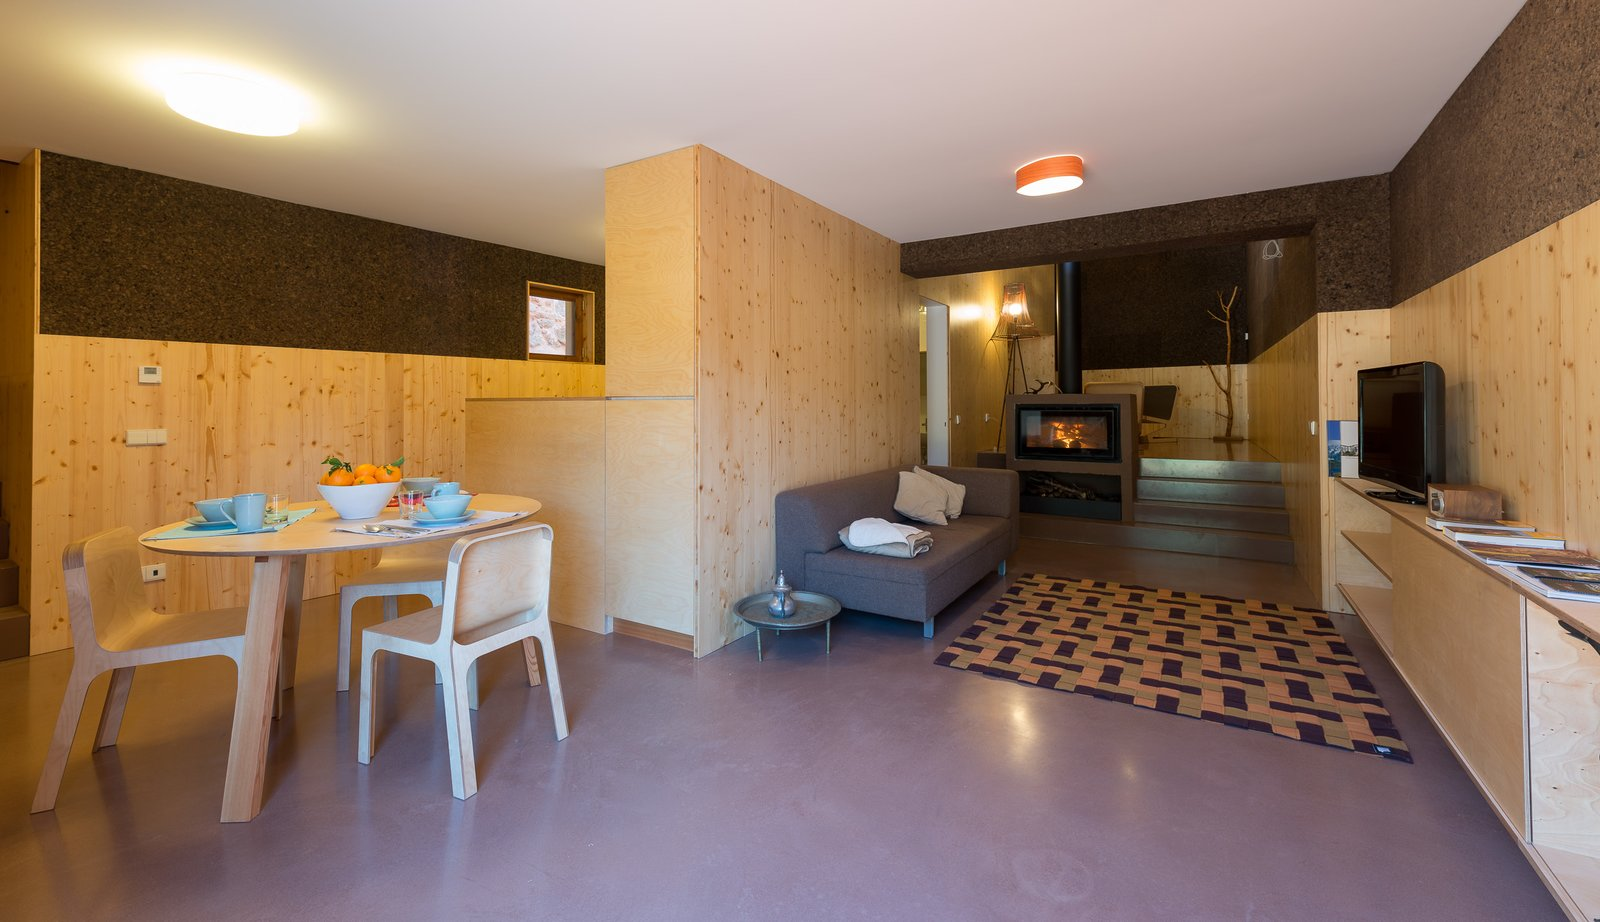 Living Room, Chair, Sofa, Sectional, End Tables, Table, Storage, Lamps, Ceiling Lighting, Floor Lighting, and Wood Burning Fireplace  Photo 9 of 16 in Stay in a Tiny, Eco-Friendly House in a Portuguese Schist Village